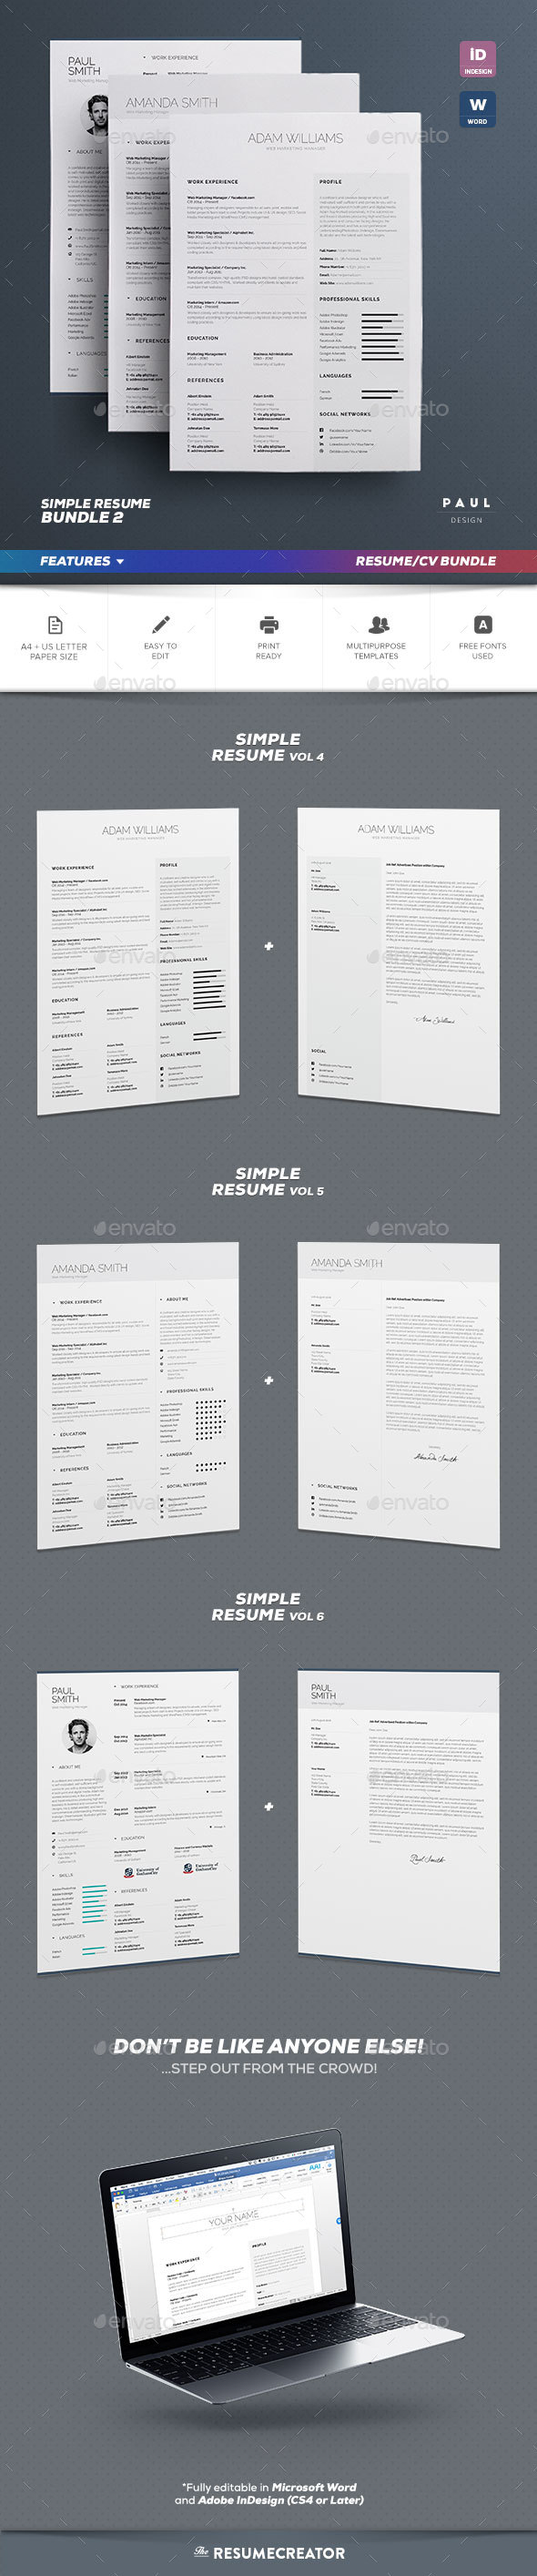 Simple Resume/Cv Bundle Volume 2